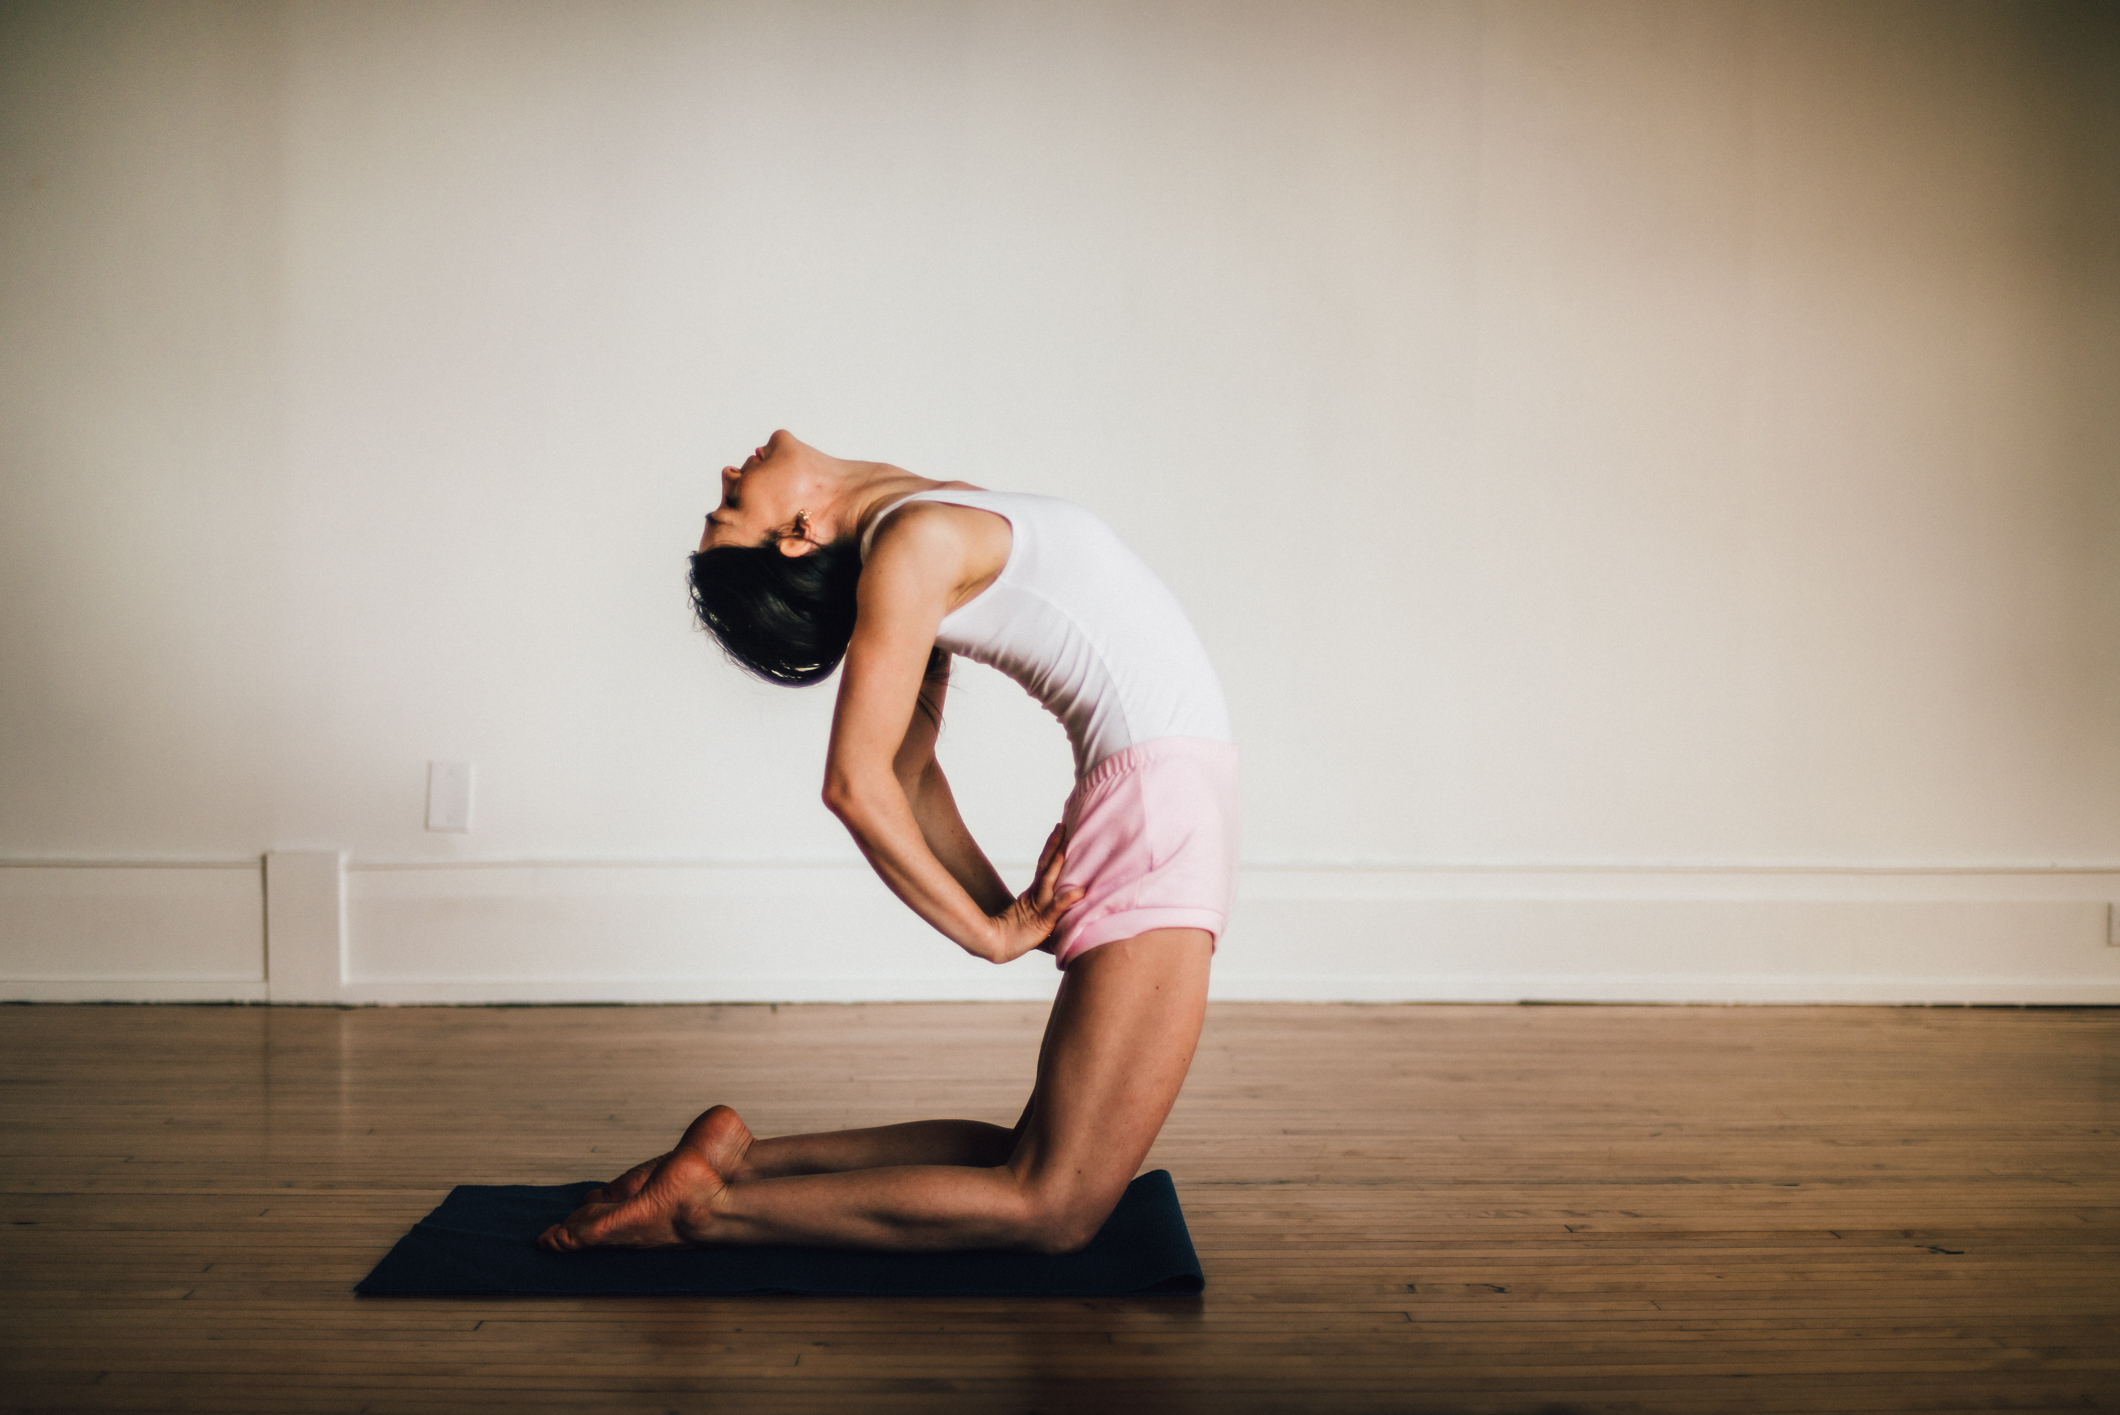 Backbends and other categories of postures are introduced in Level 2 classes.